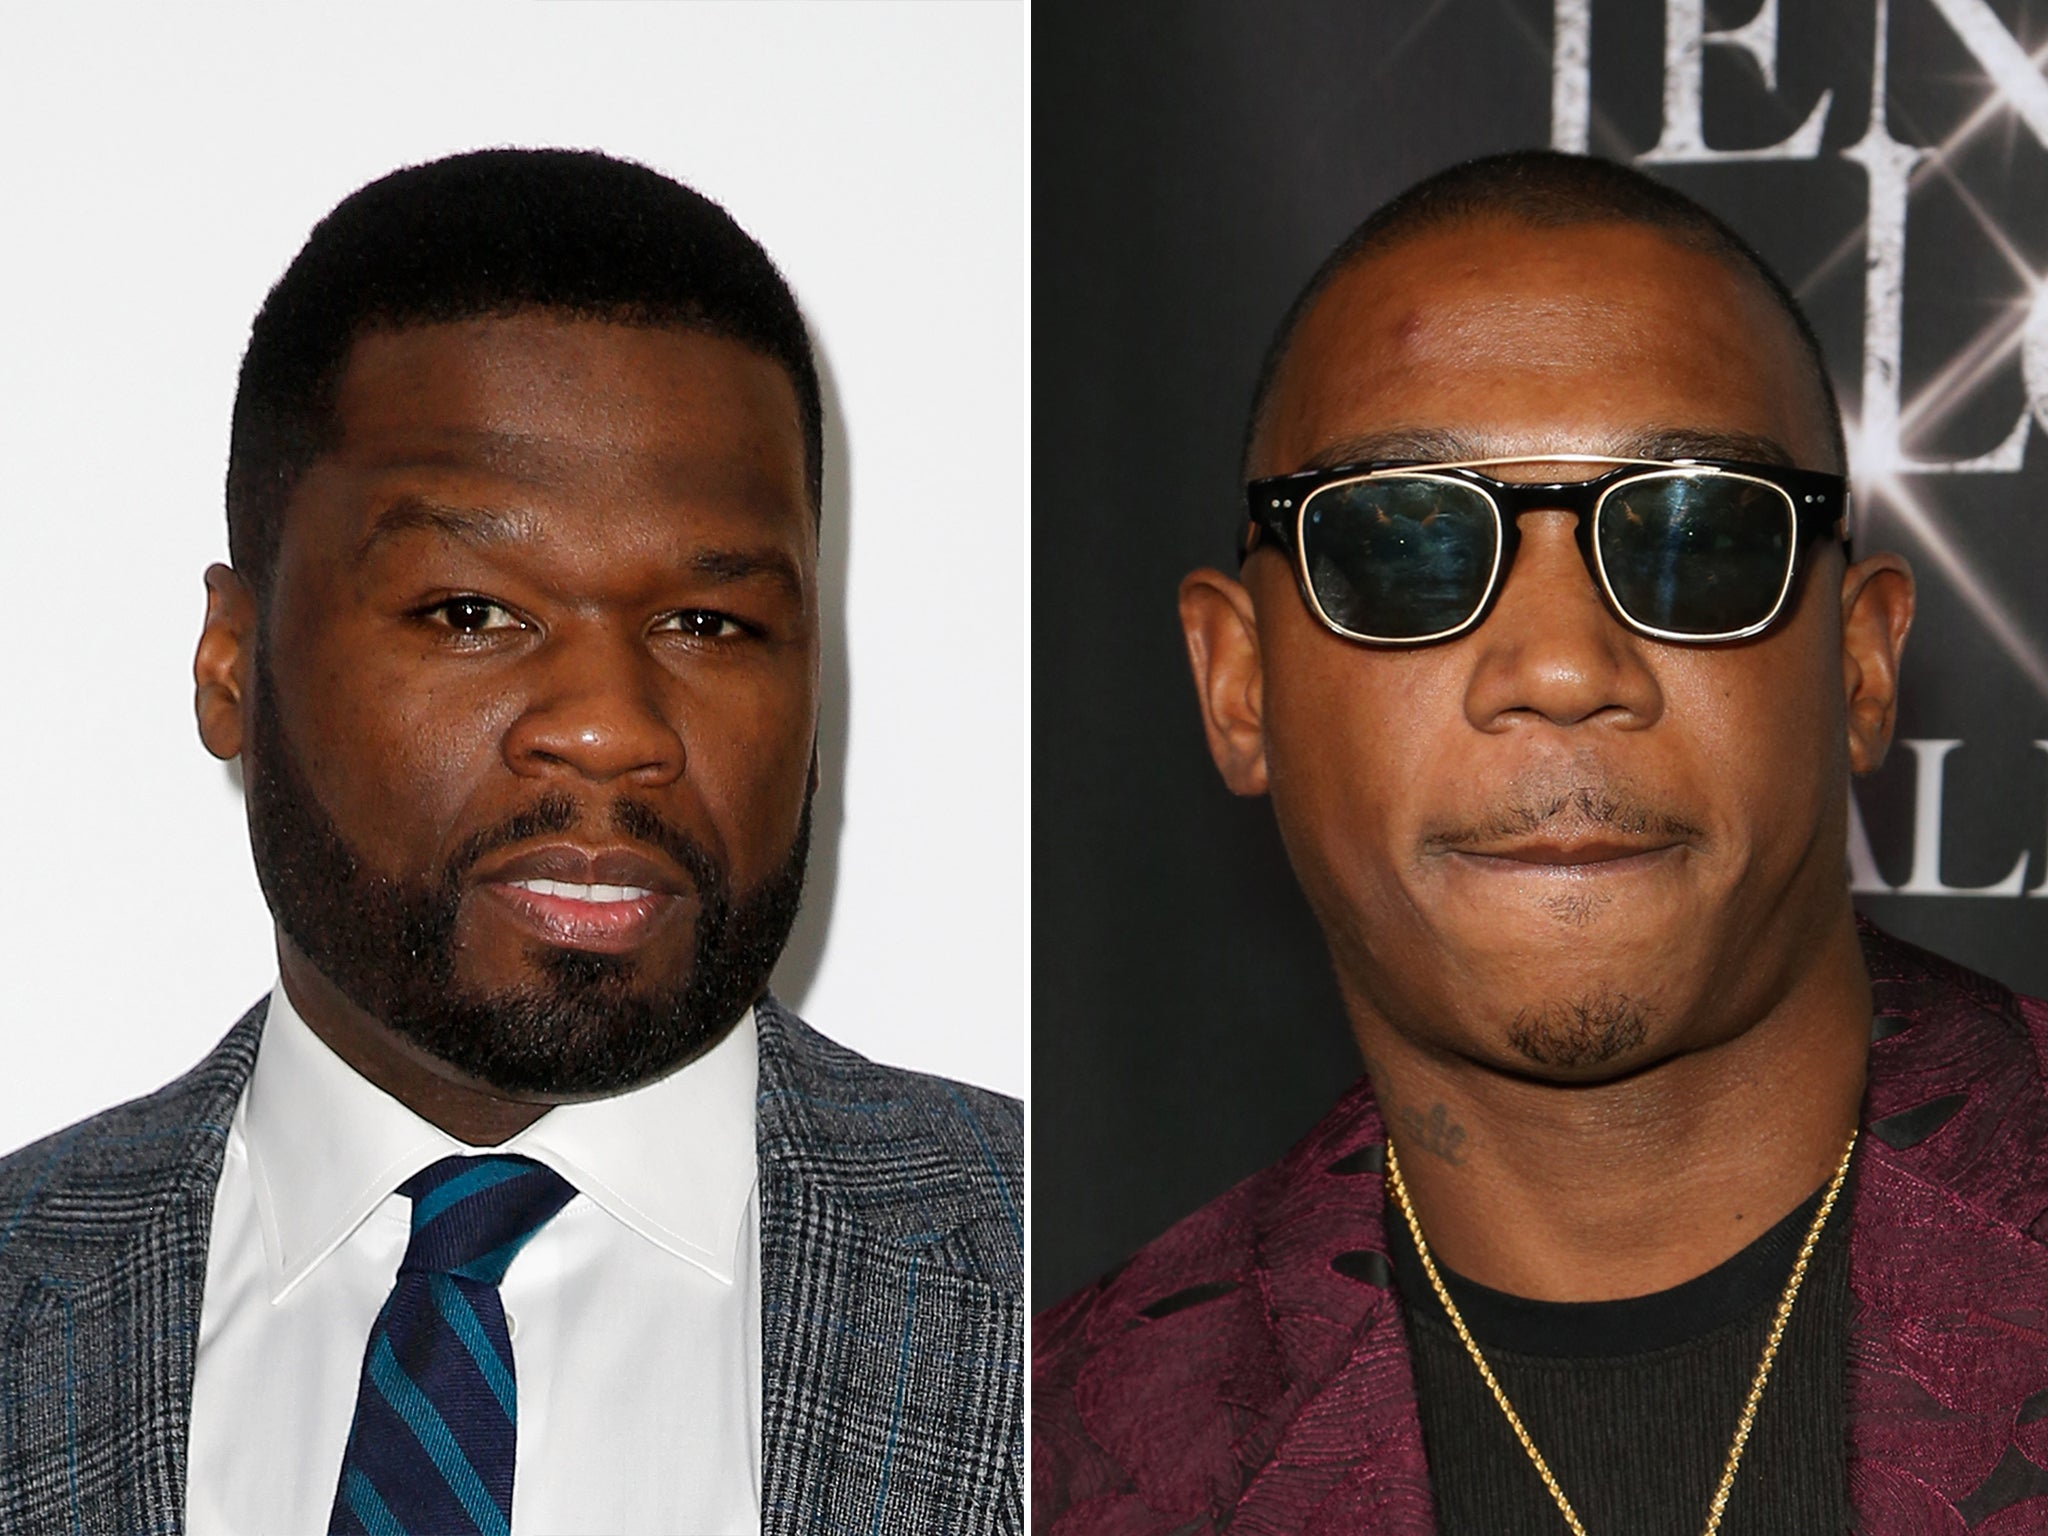 50 Cent says Ja Rule feud will not end until 'one of us is gone